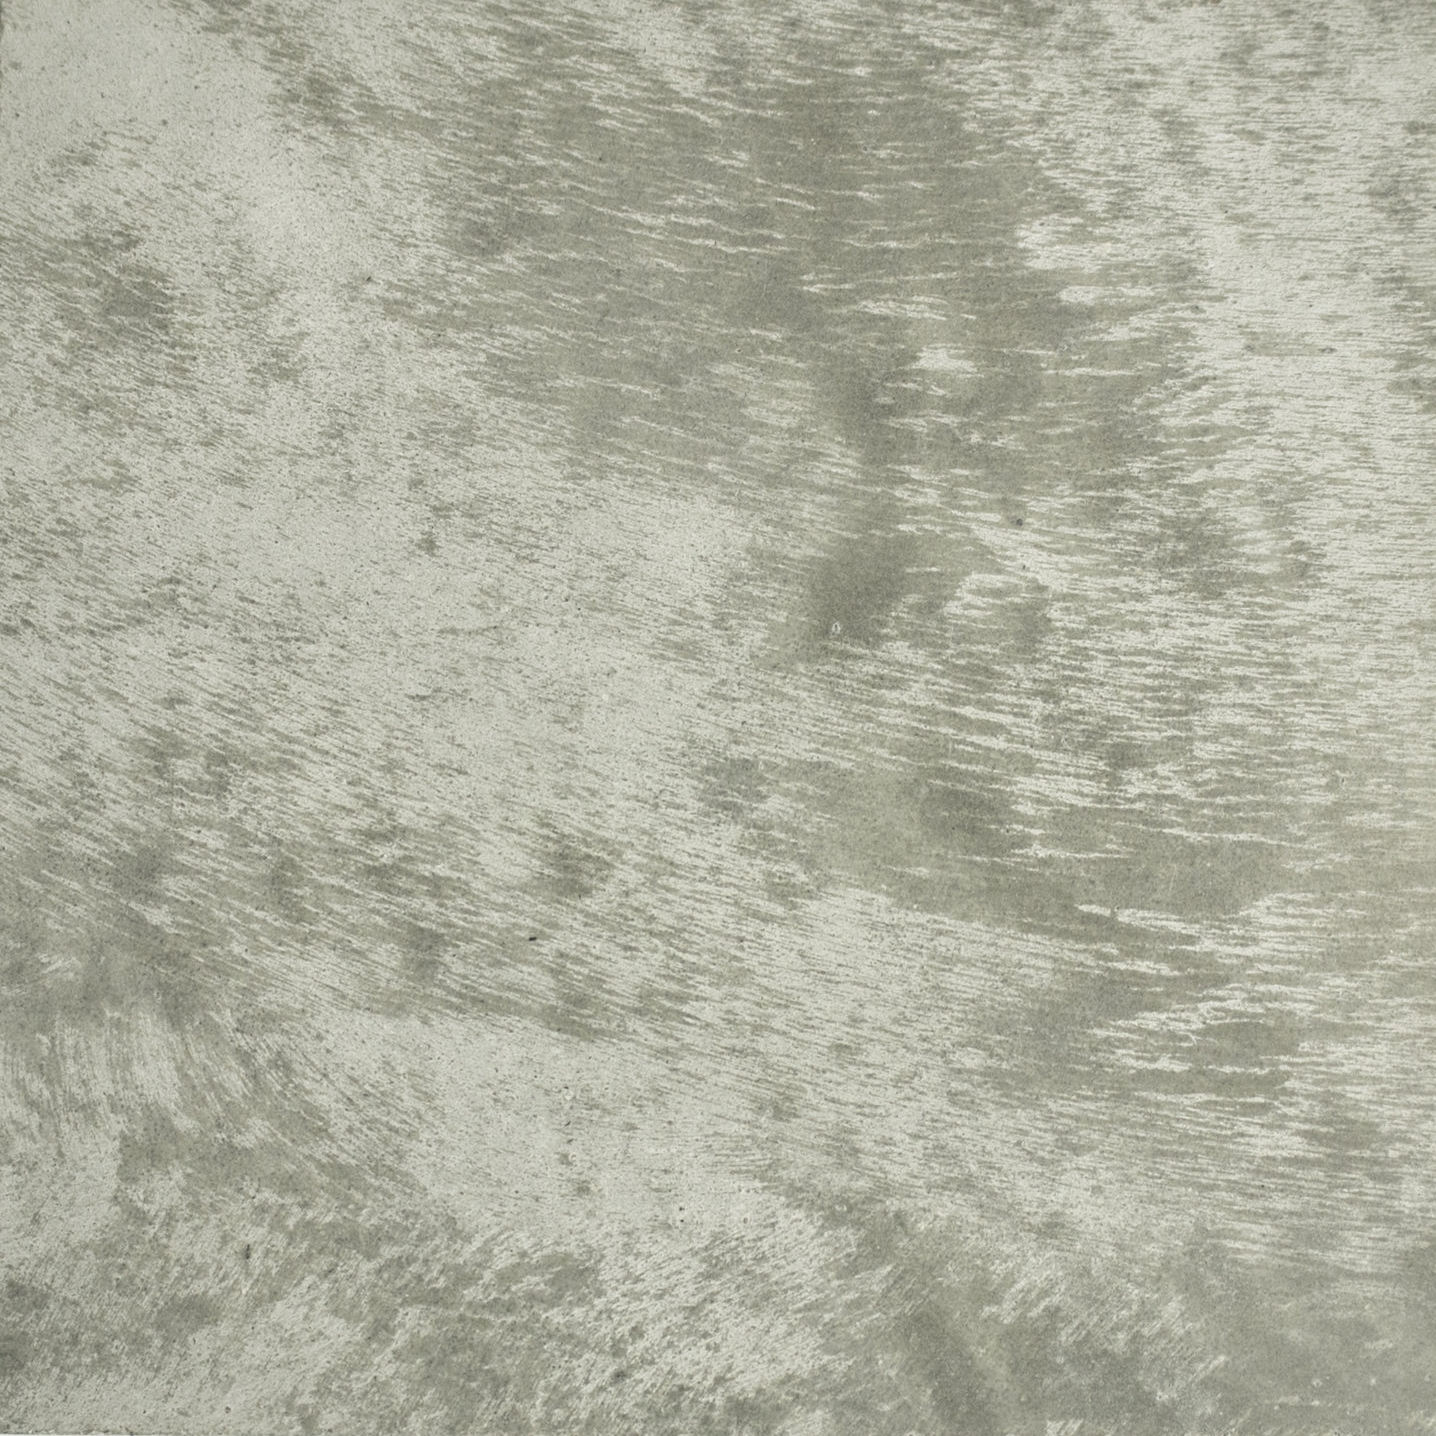 Get Real Surfaces Concrete Finishes